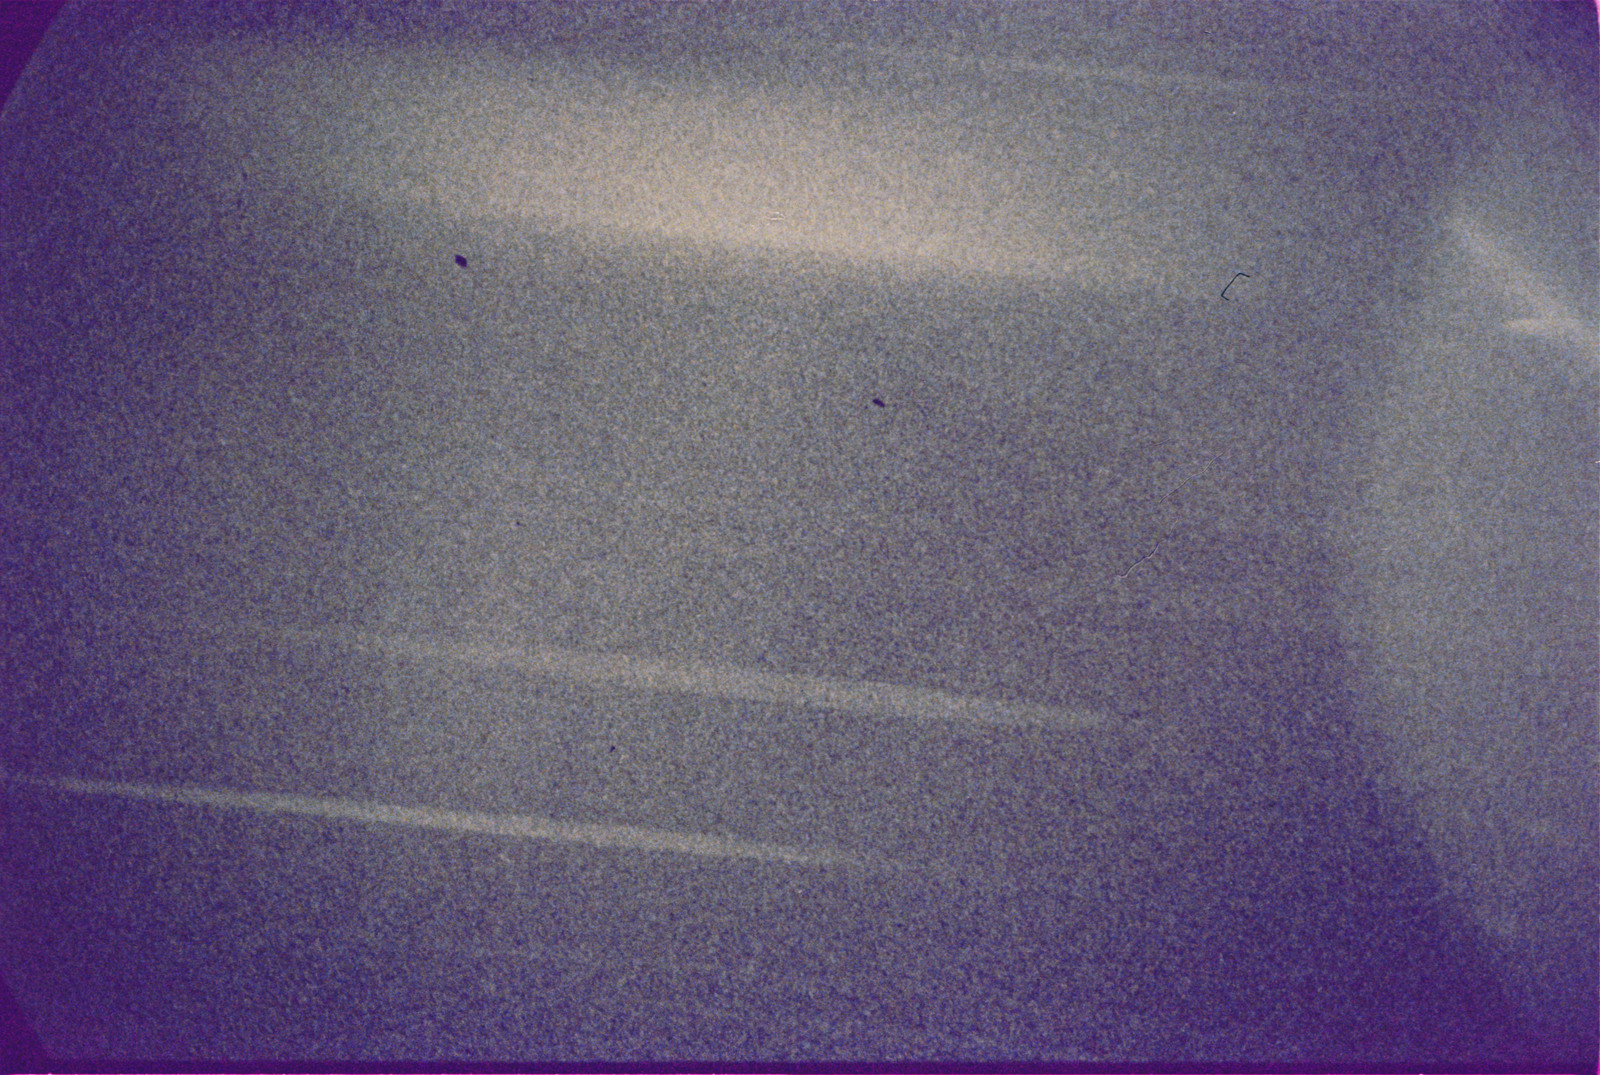 STS051-54-009 - STS-051 - Auroral Photography Experiment B